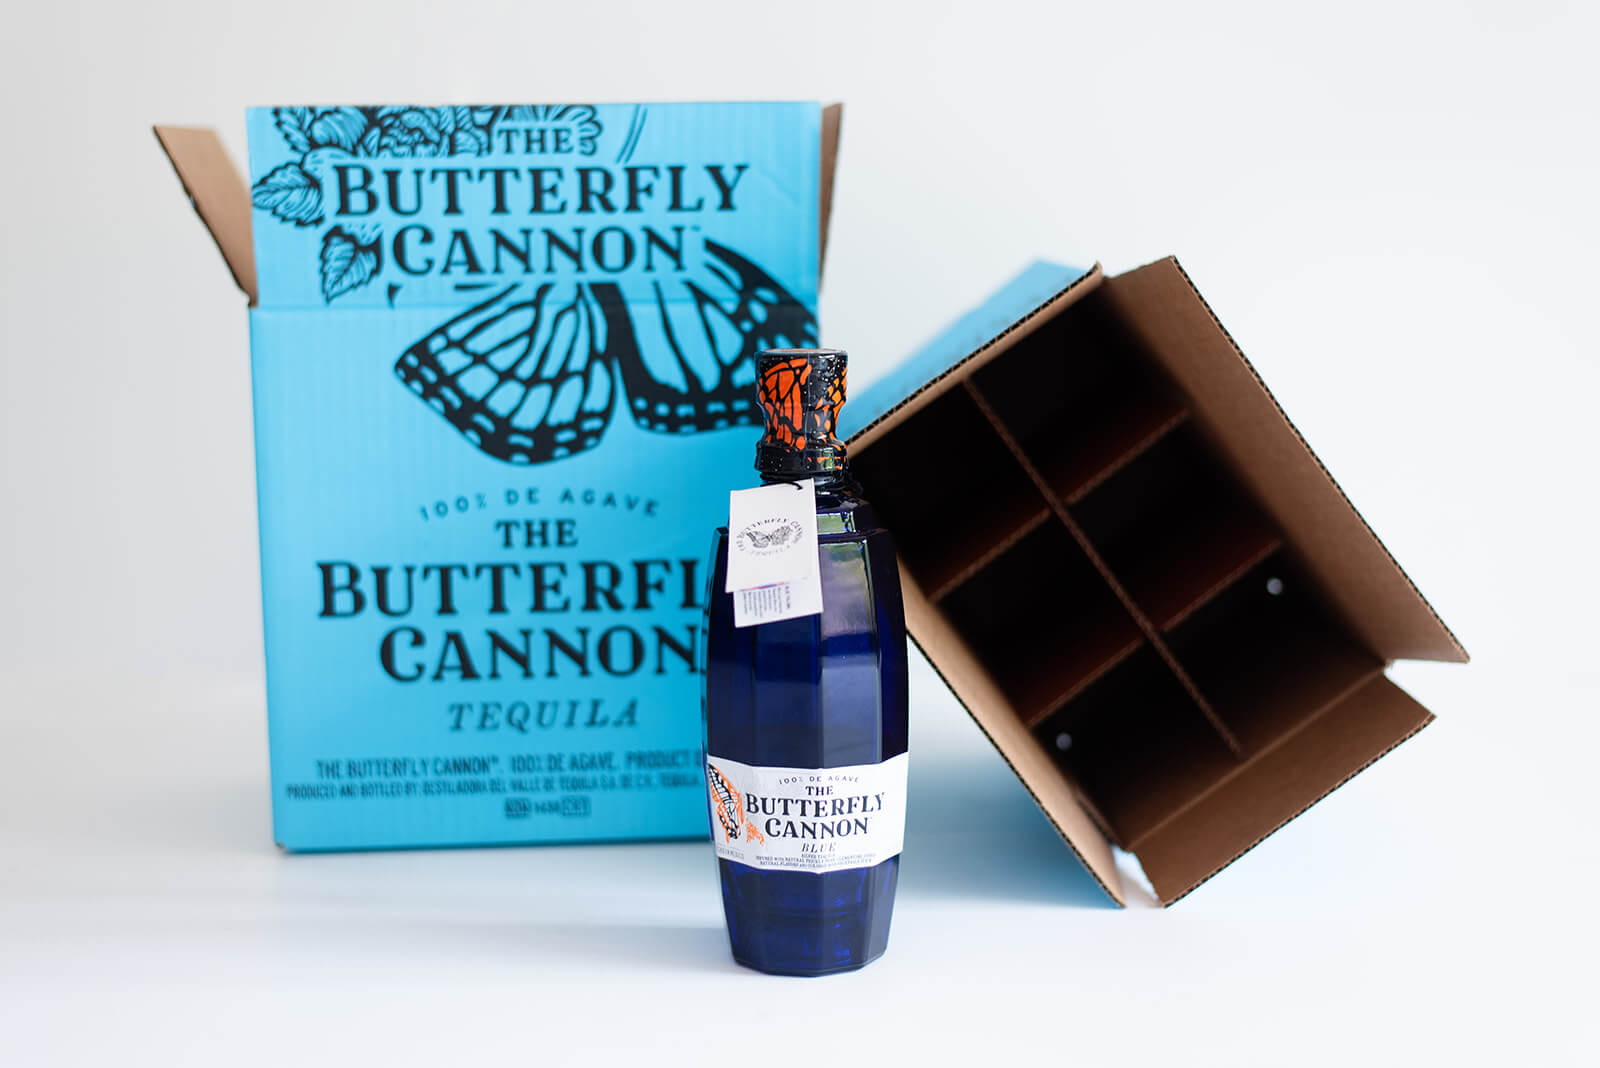 Butterfly Cannon bottle and package